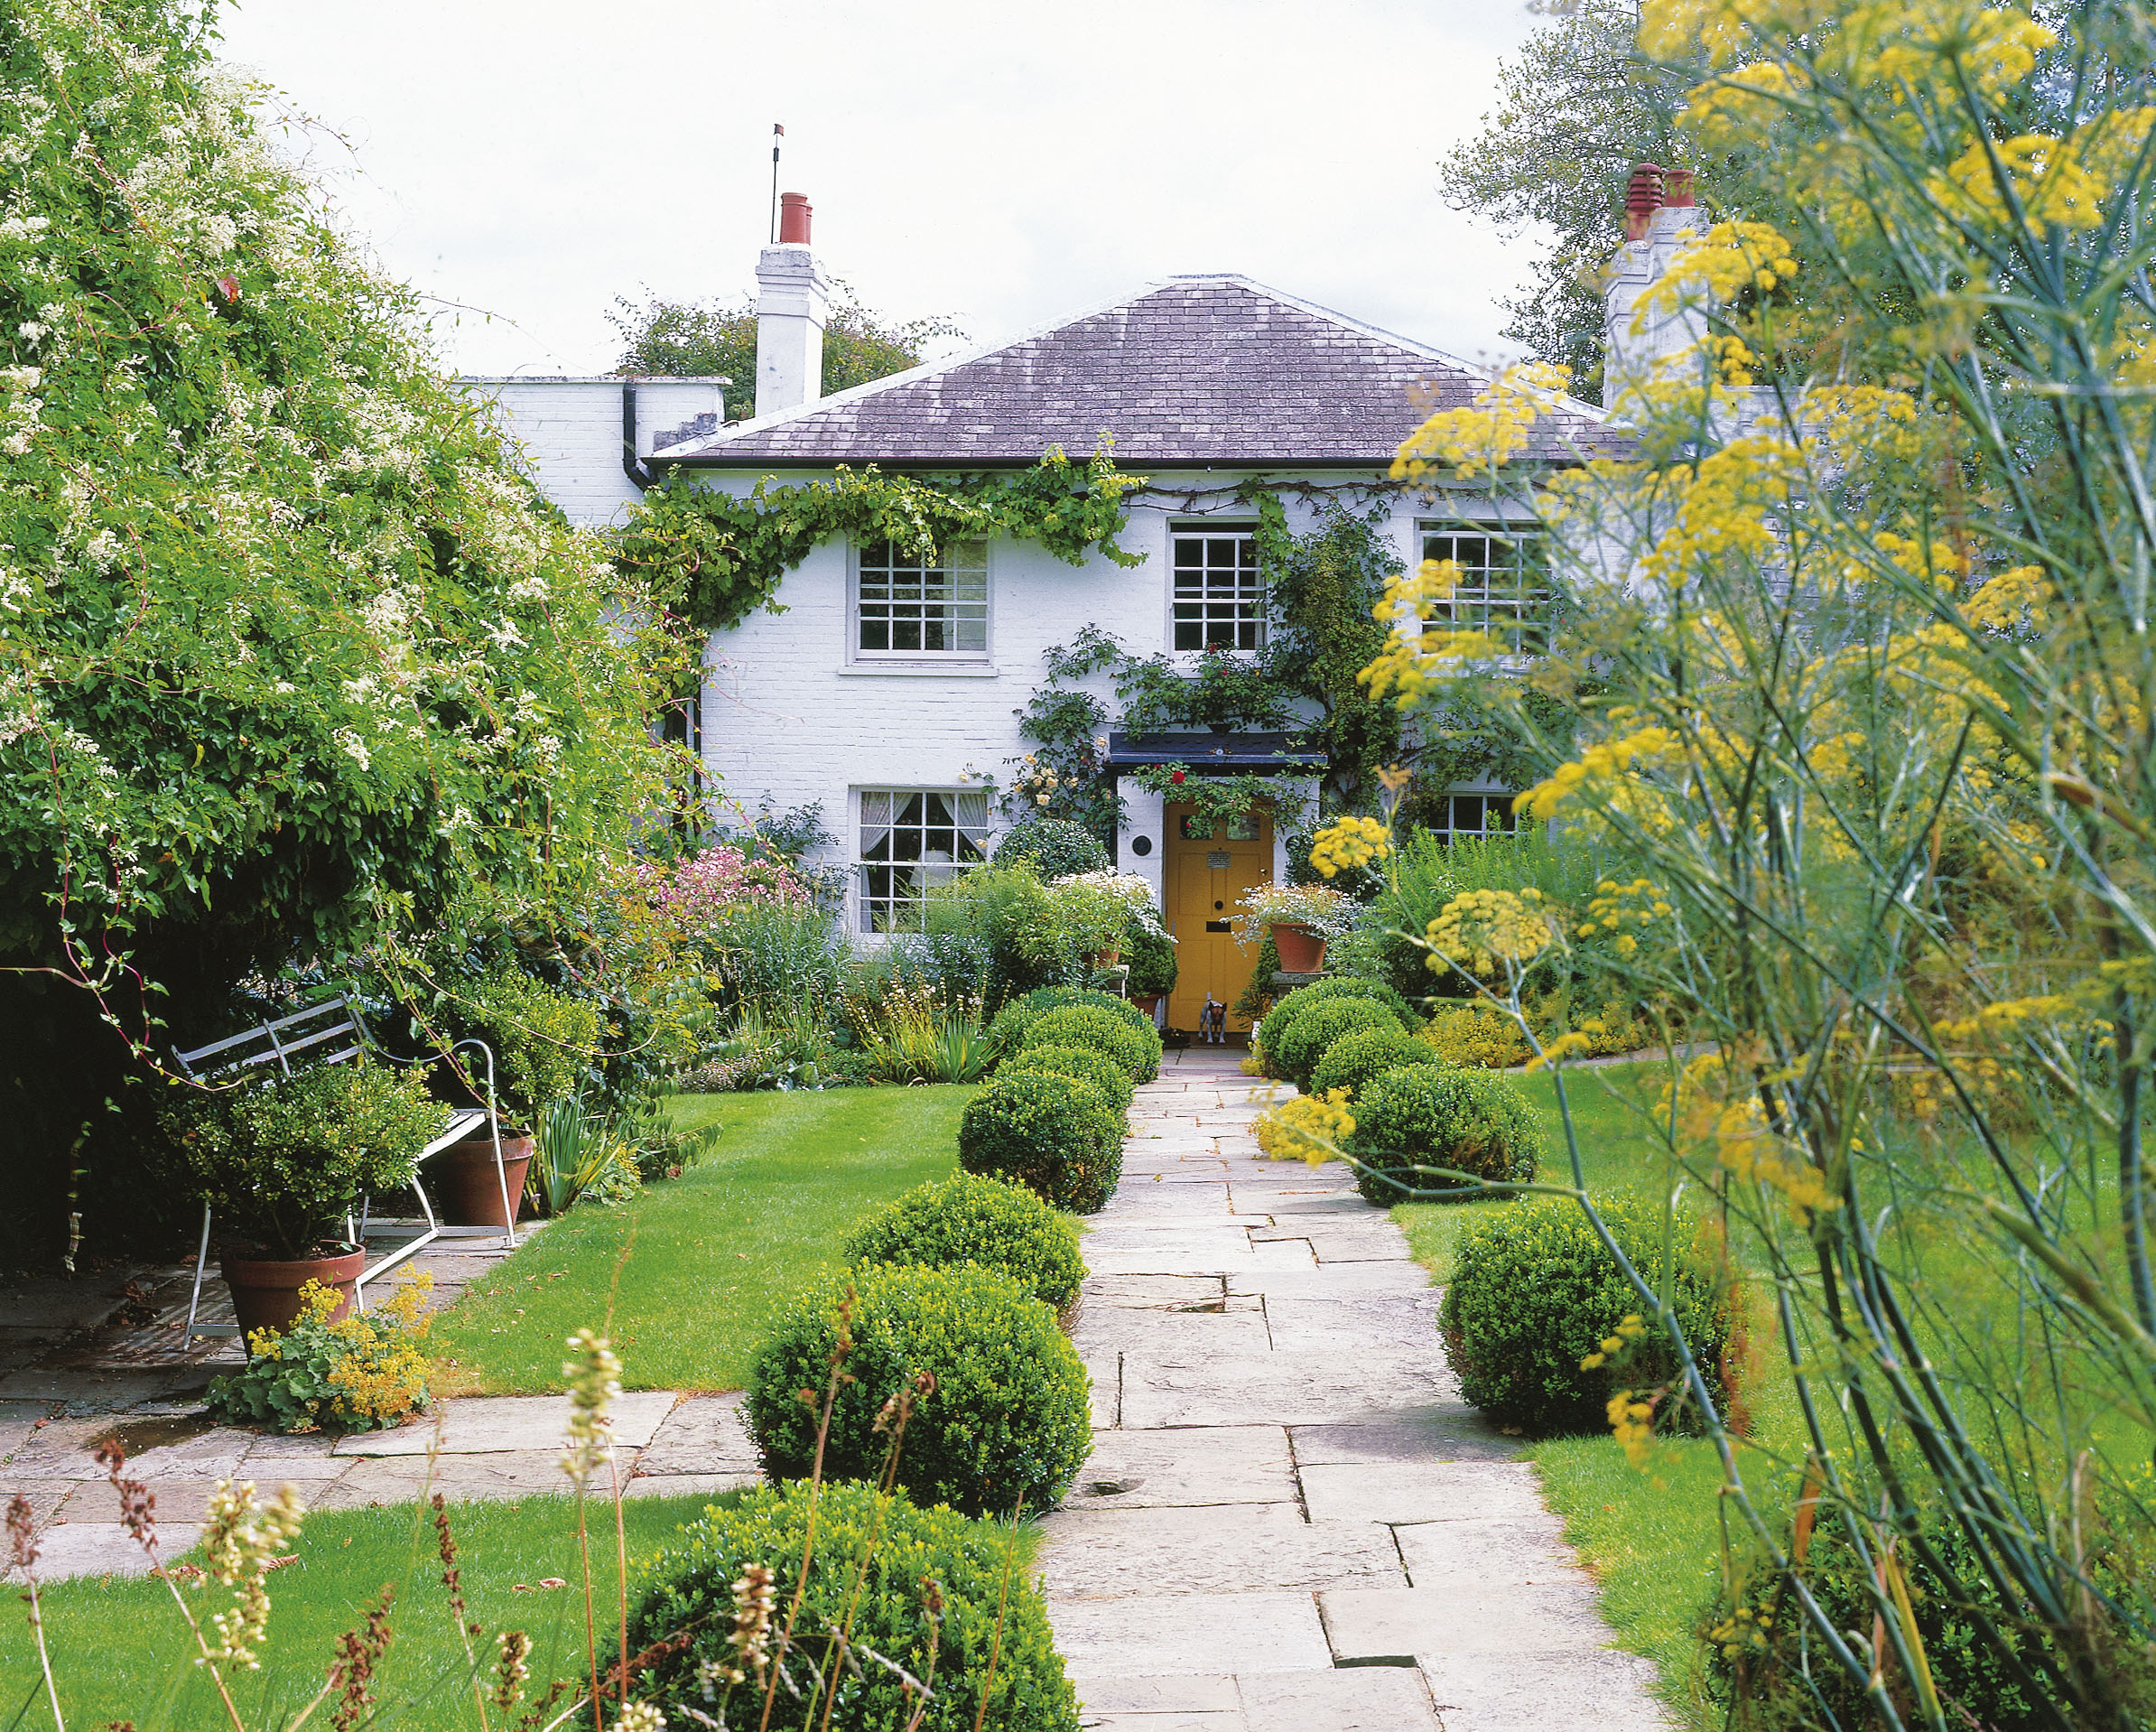 Roald dahl 39 s garden to open for charity amateur gardening House garden pics